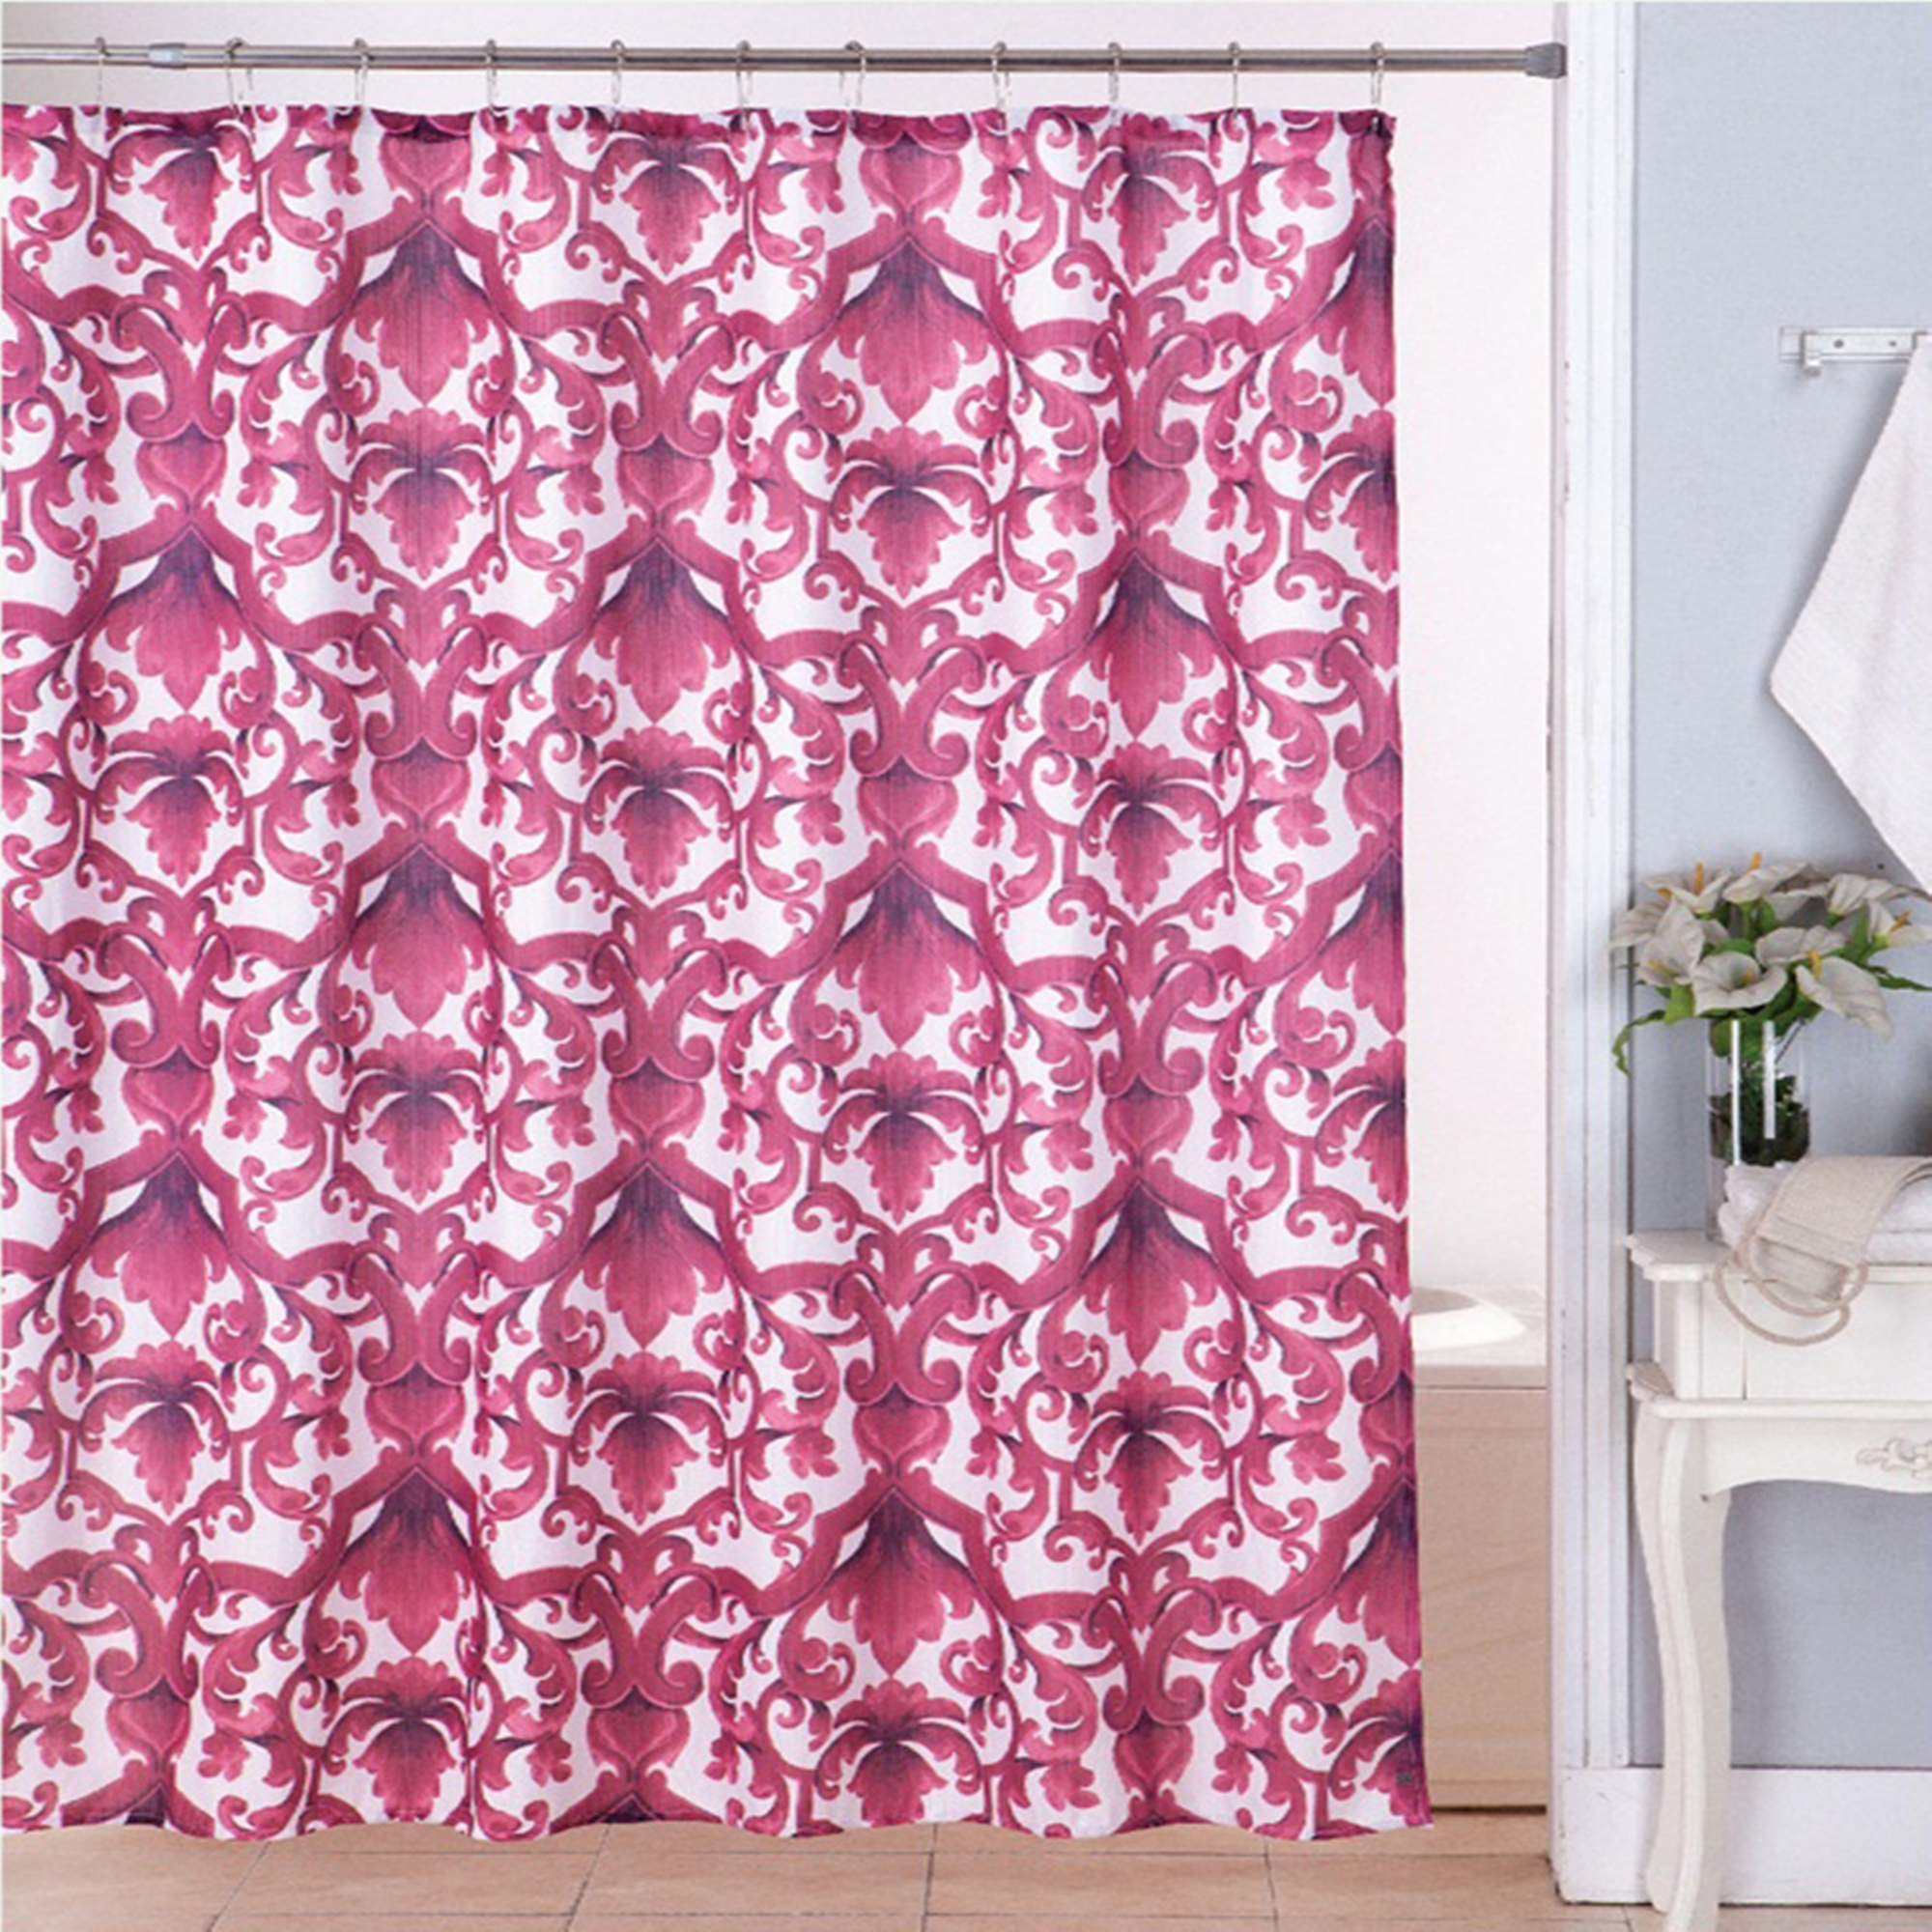 Ariel Shower Curtain 89 Ariel Shower Curtain Croscill Ariel Shower Curtain August